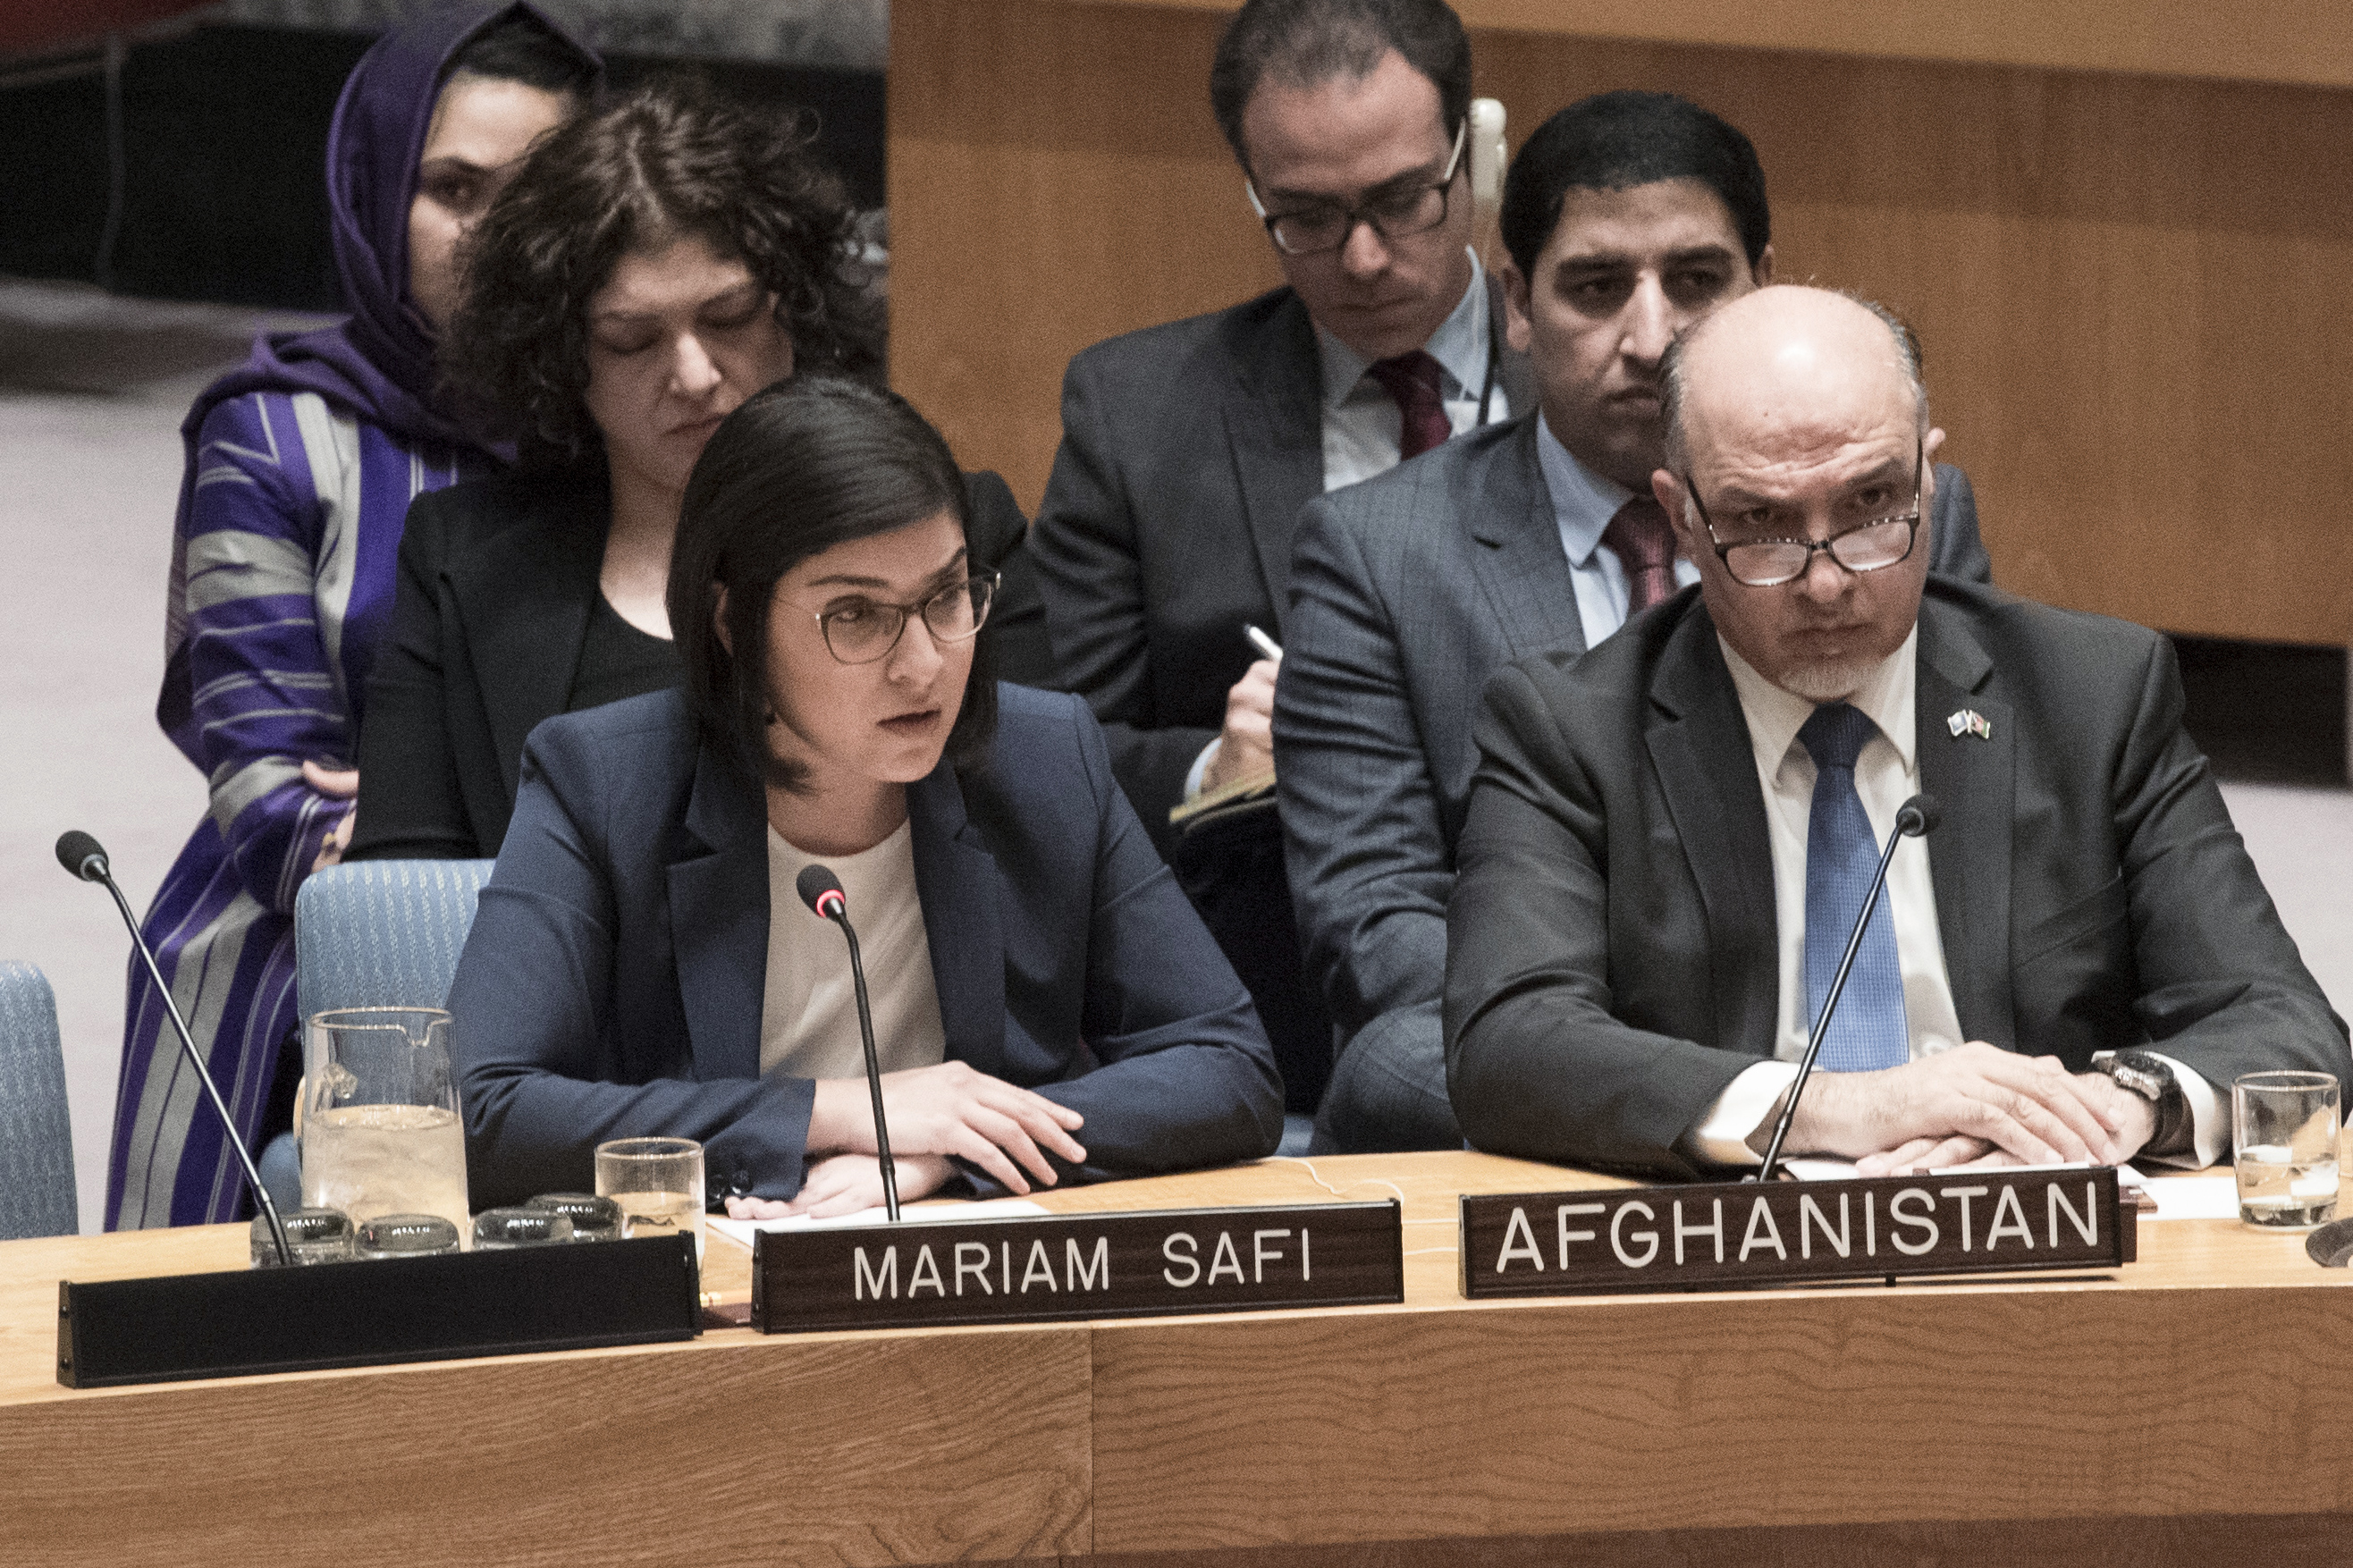 DROPS Director, Mariam Safi, brief to the UNSC on the Afghan Peace Process, 8 Mar 2018